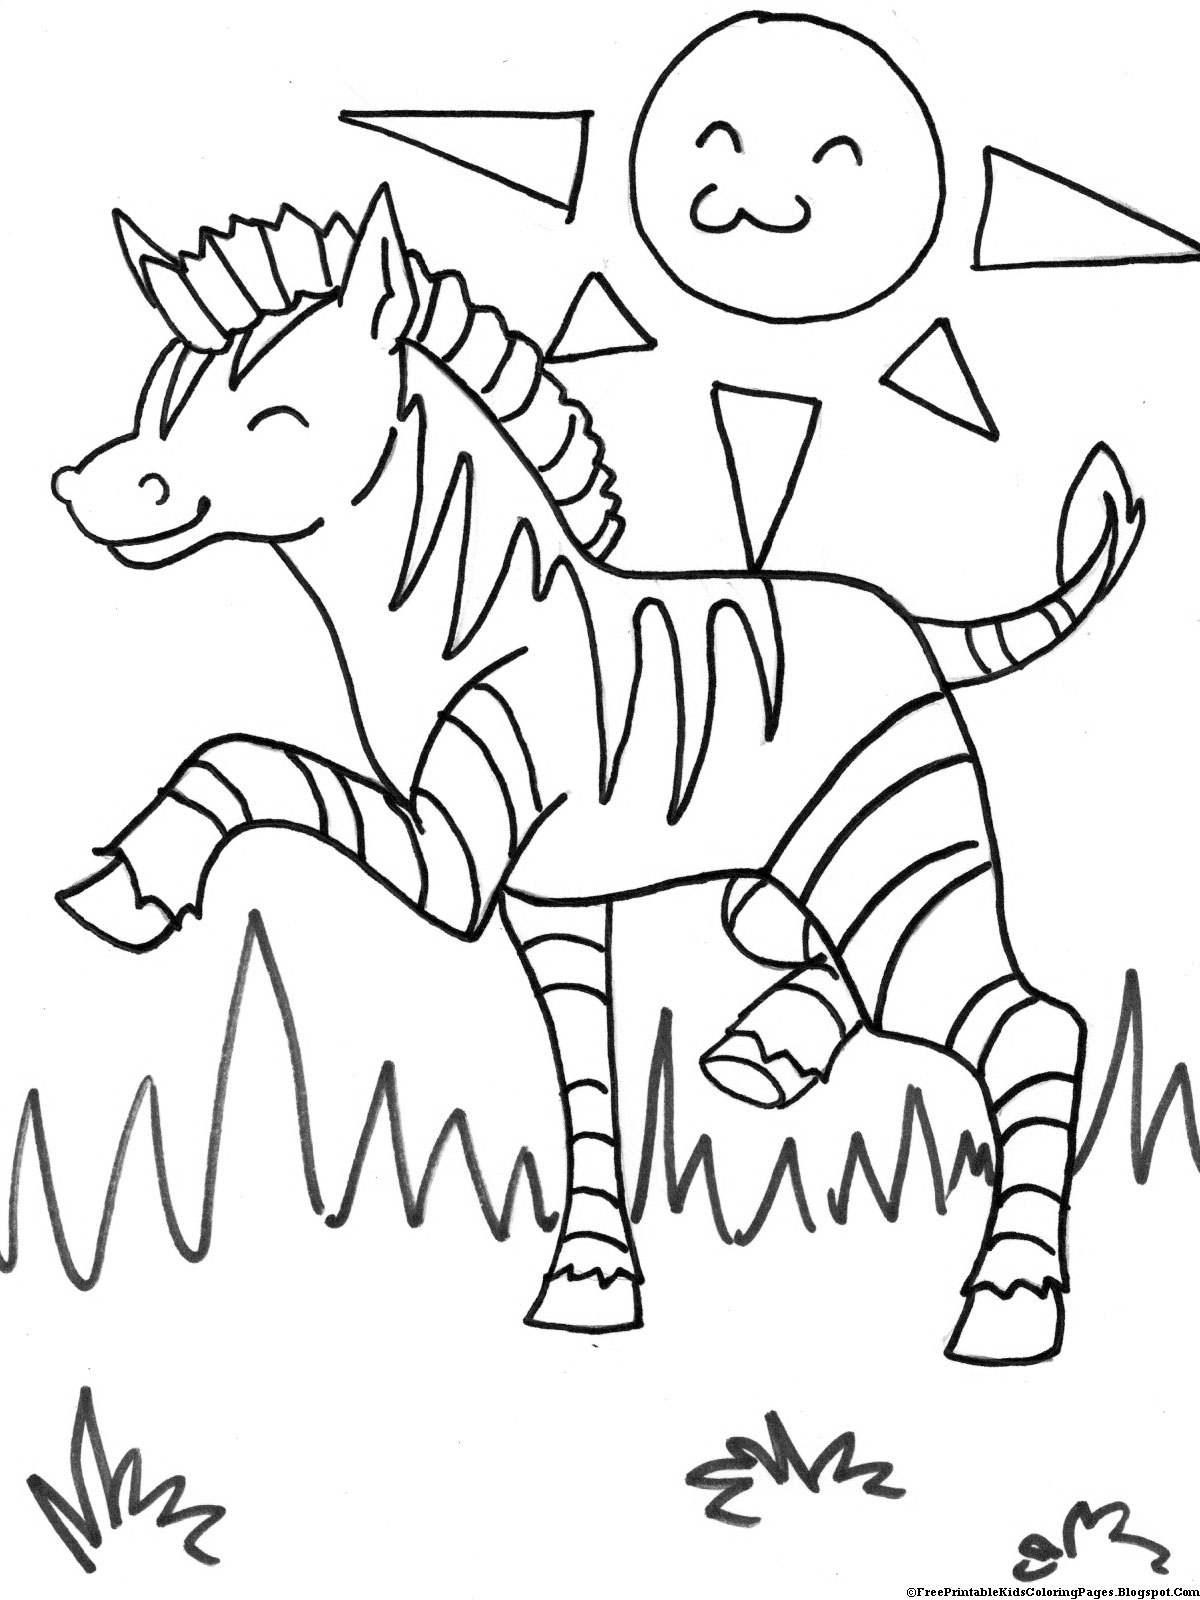 colouring pages to print free zebra coloring pages free printable kids coloring pages print free colouring pages to